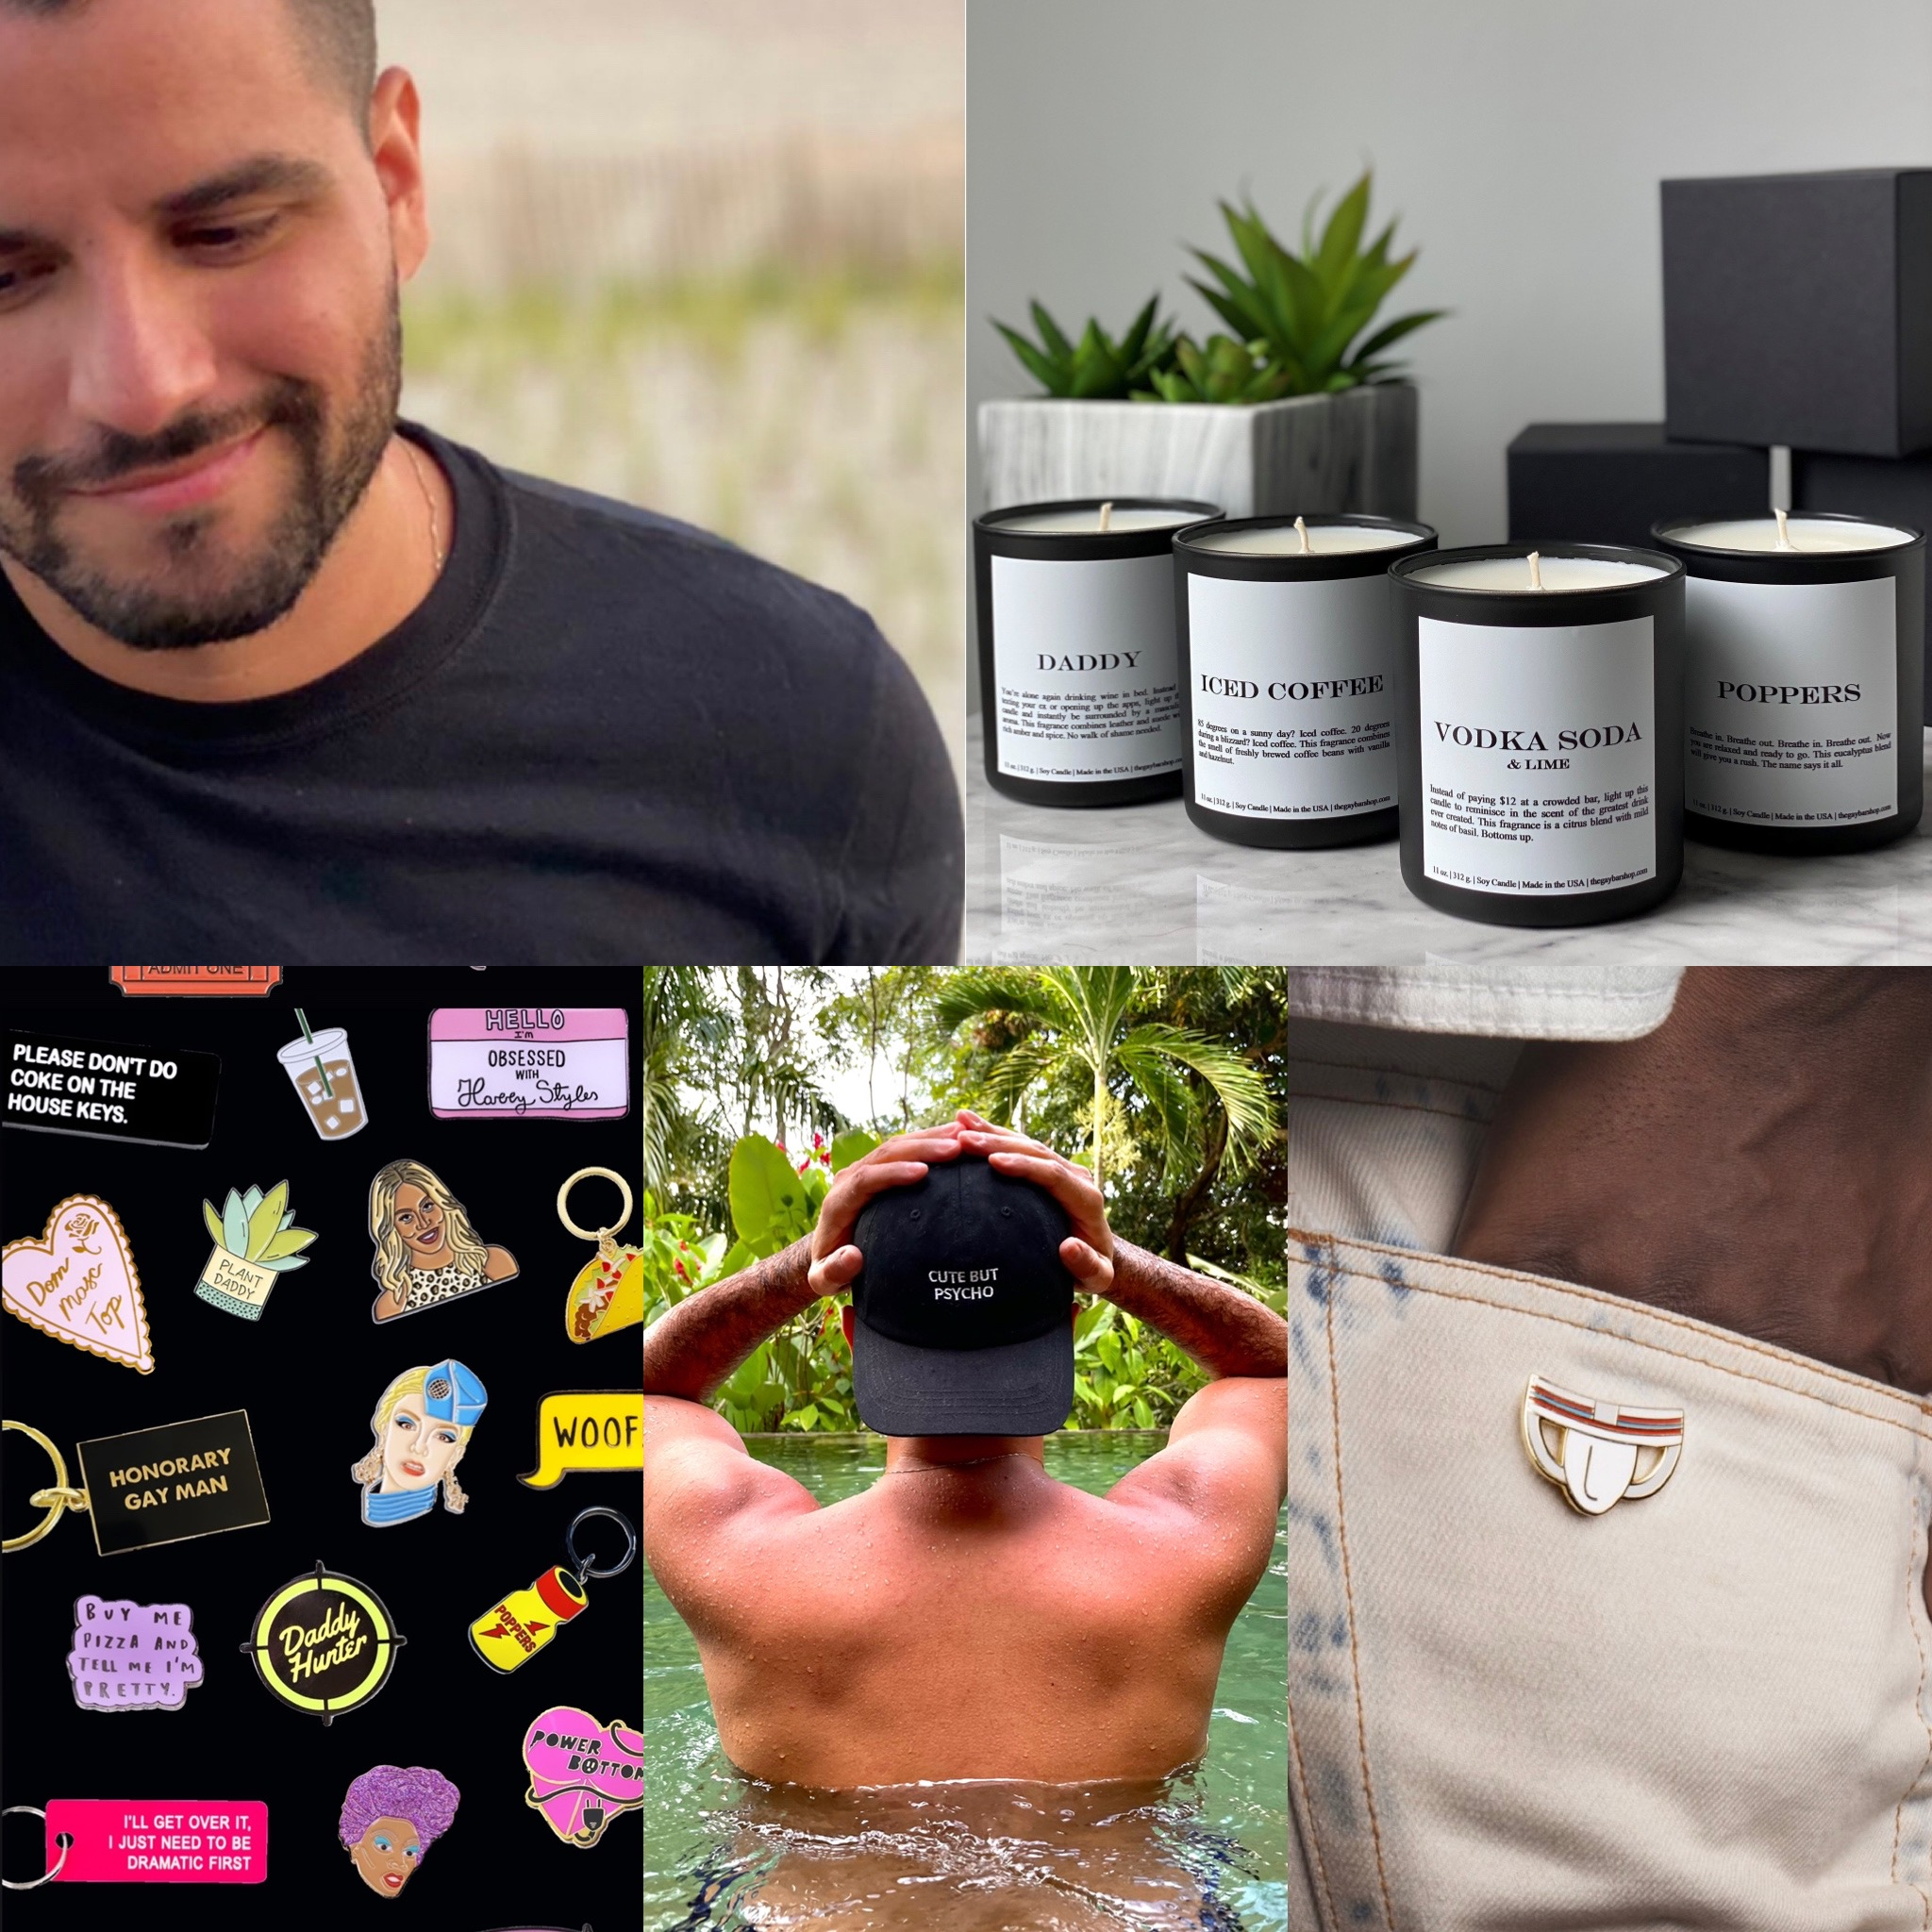 The perfect gift for your gay friend doesn't ex… never mind. Discover The Gay Bar Shop